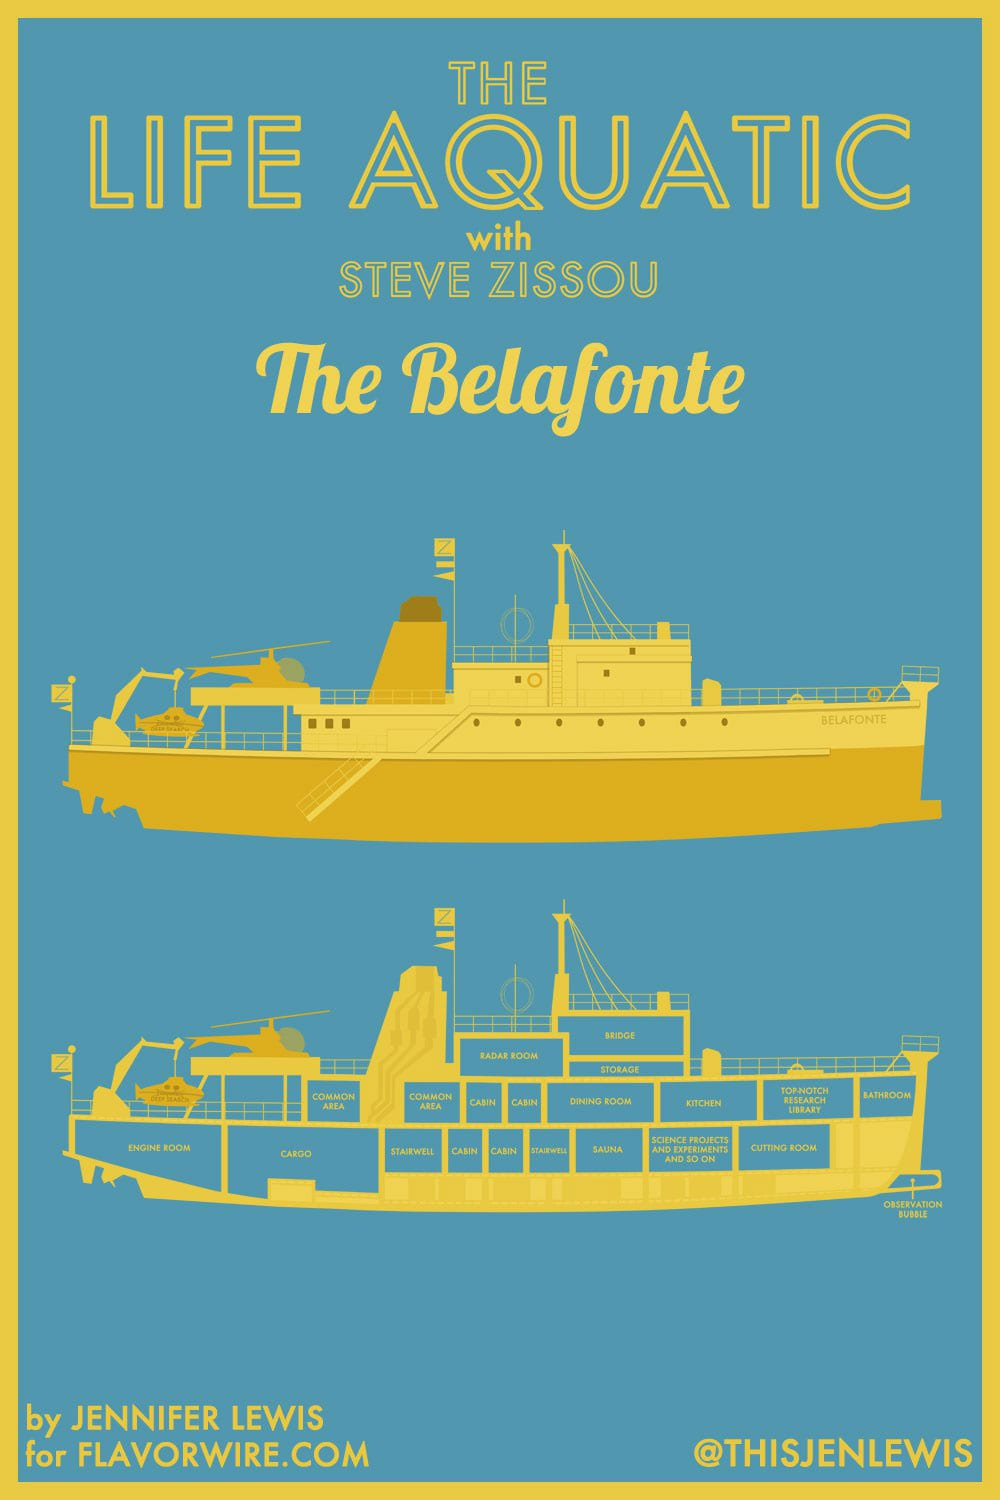 The+Belefafonte+from+the+Wes+Anderson+Floor+Plans+Collection